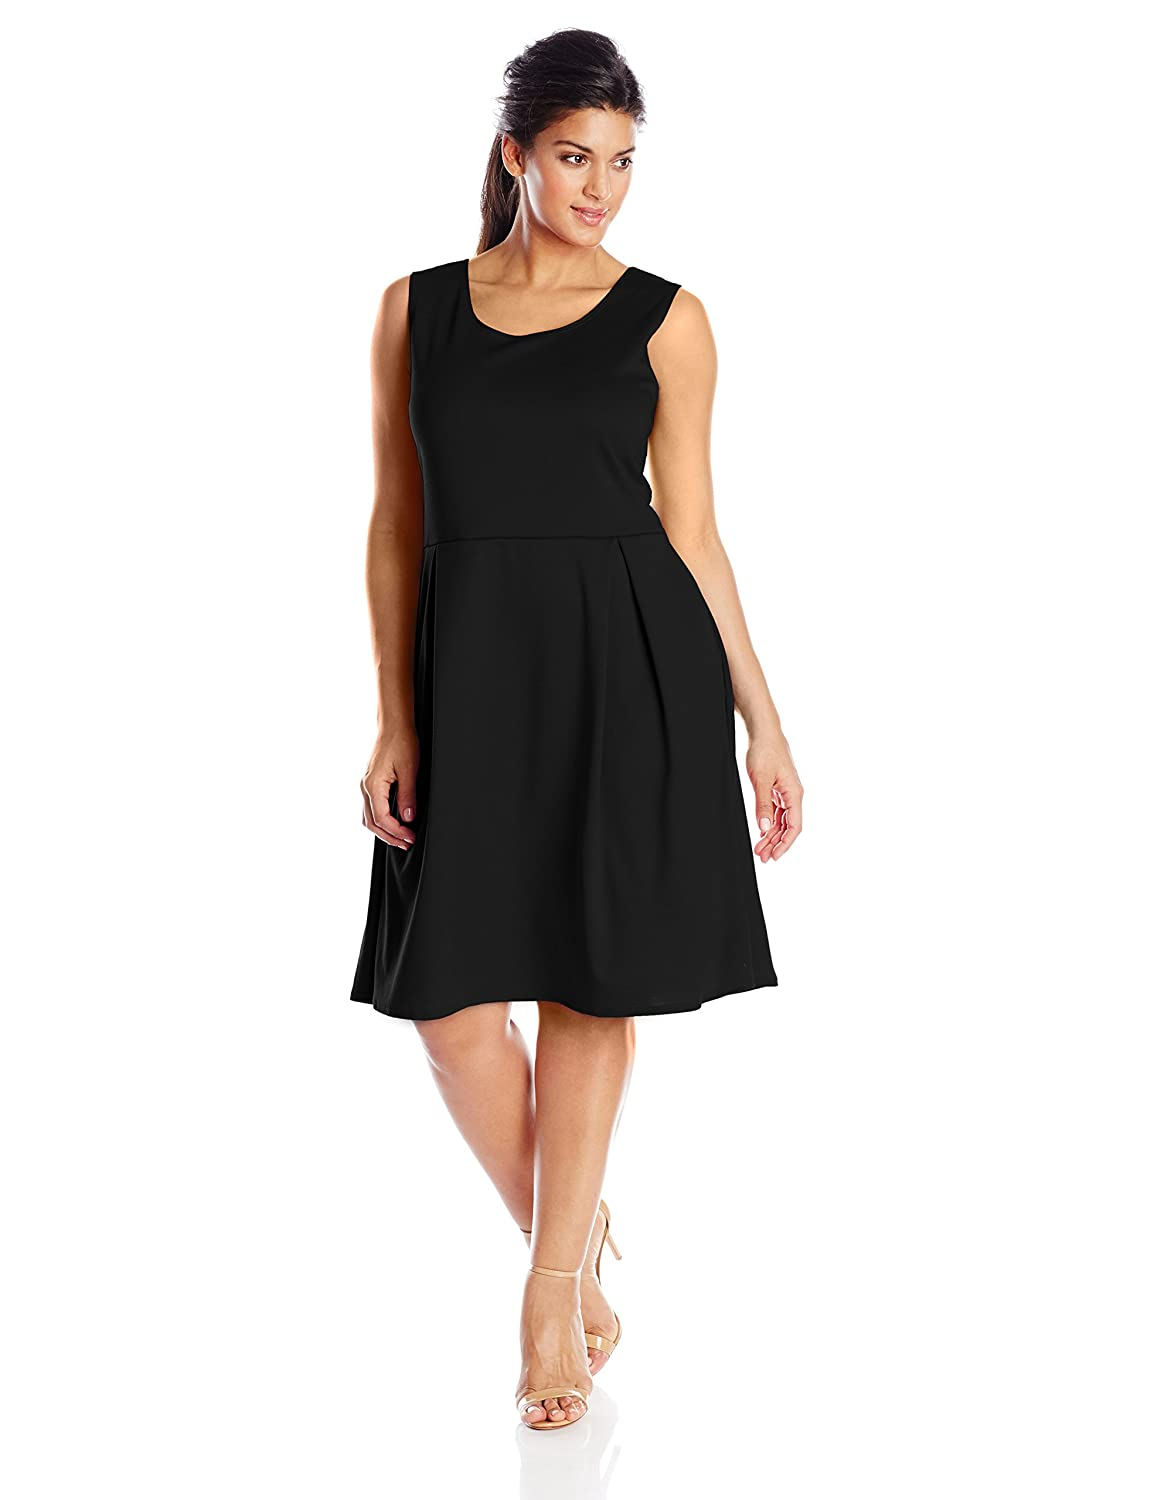 eVogues Apparel junior plus size clothing store is your premiere source for latest styles in junior and women's plus size clothing. We specialize in both comfortable wear everyday - casual plus size clothing and sexy night on the town - special occasion top, shirt, blouse and dresses .